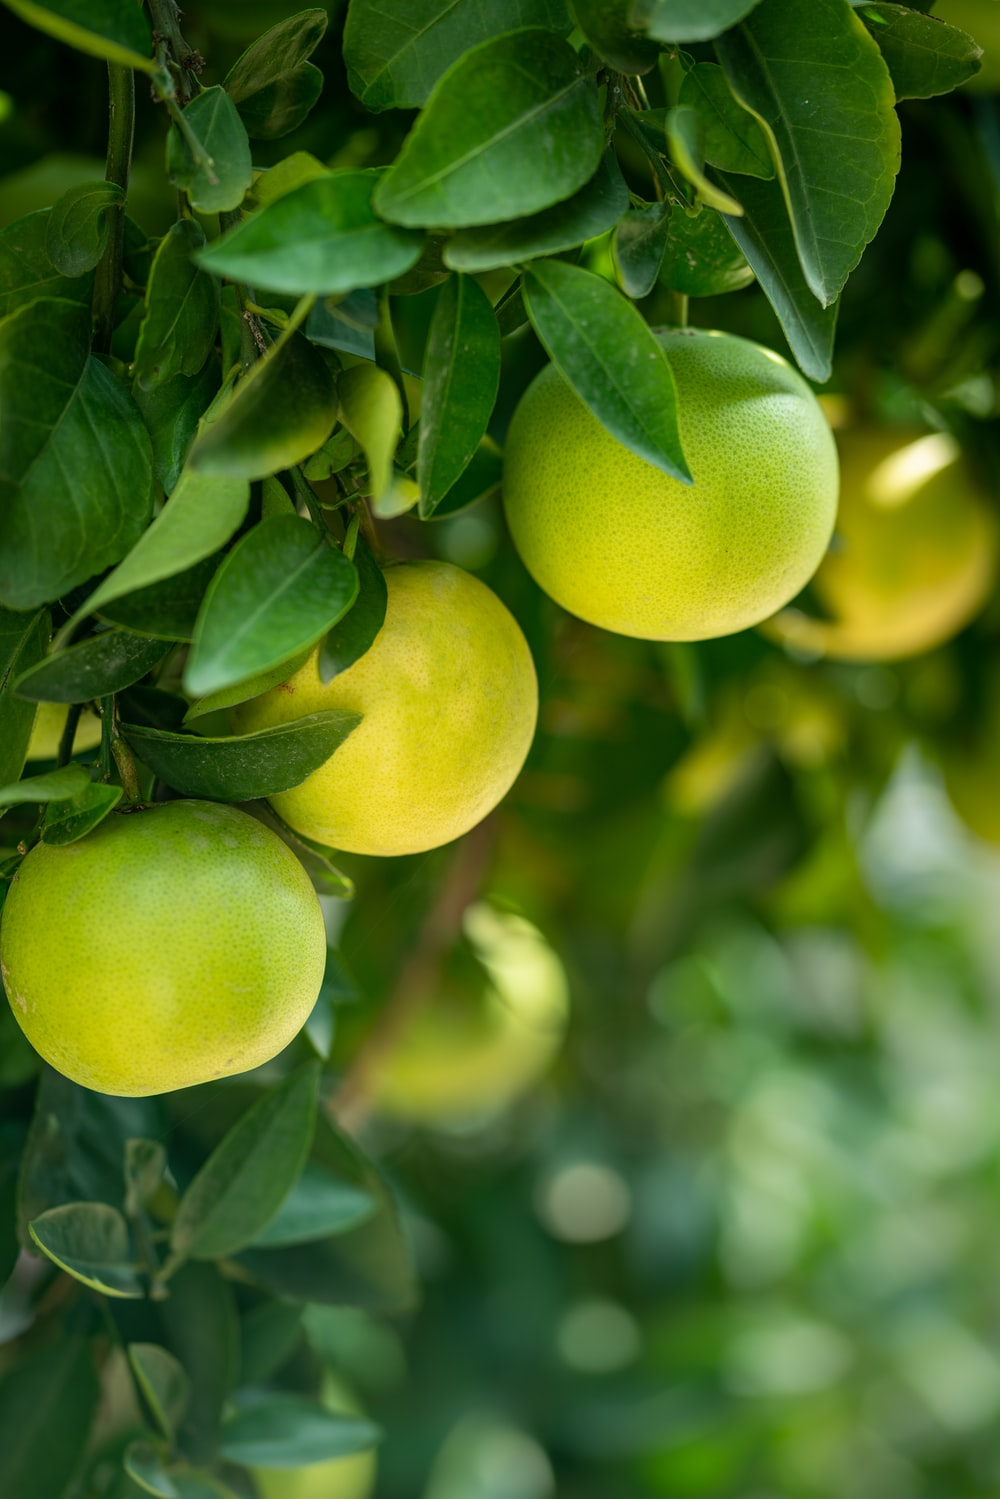 yellow round fruit in close up photography